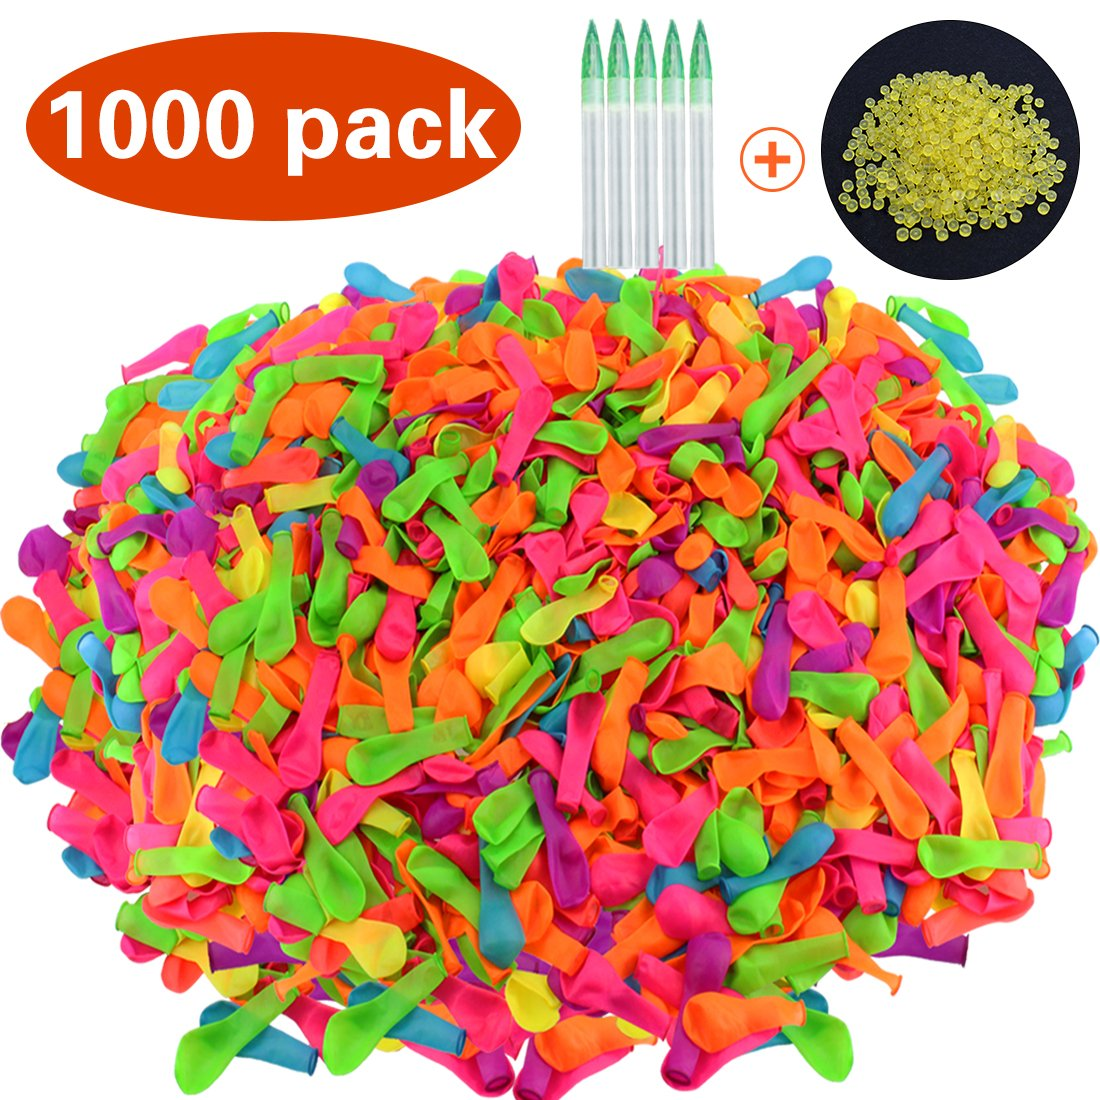 JINSEY Pack of 1000 Water Balloons with Refill Kits, Latex Water Bomb Balloons Fight Games - Summer Splash Fun Toy for Kids and Adults